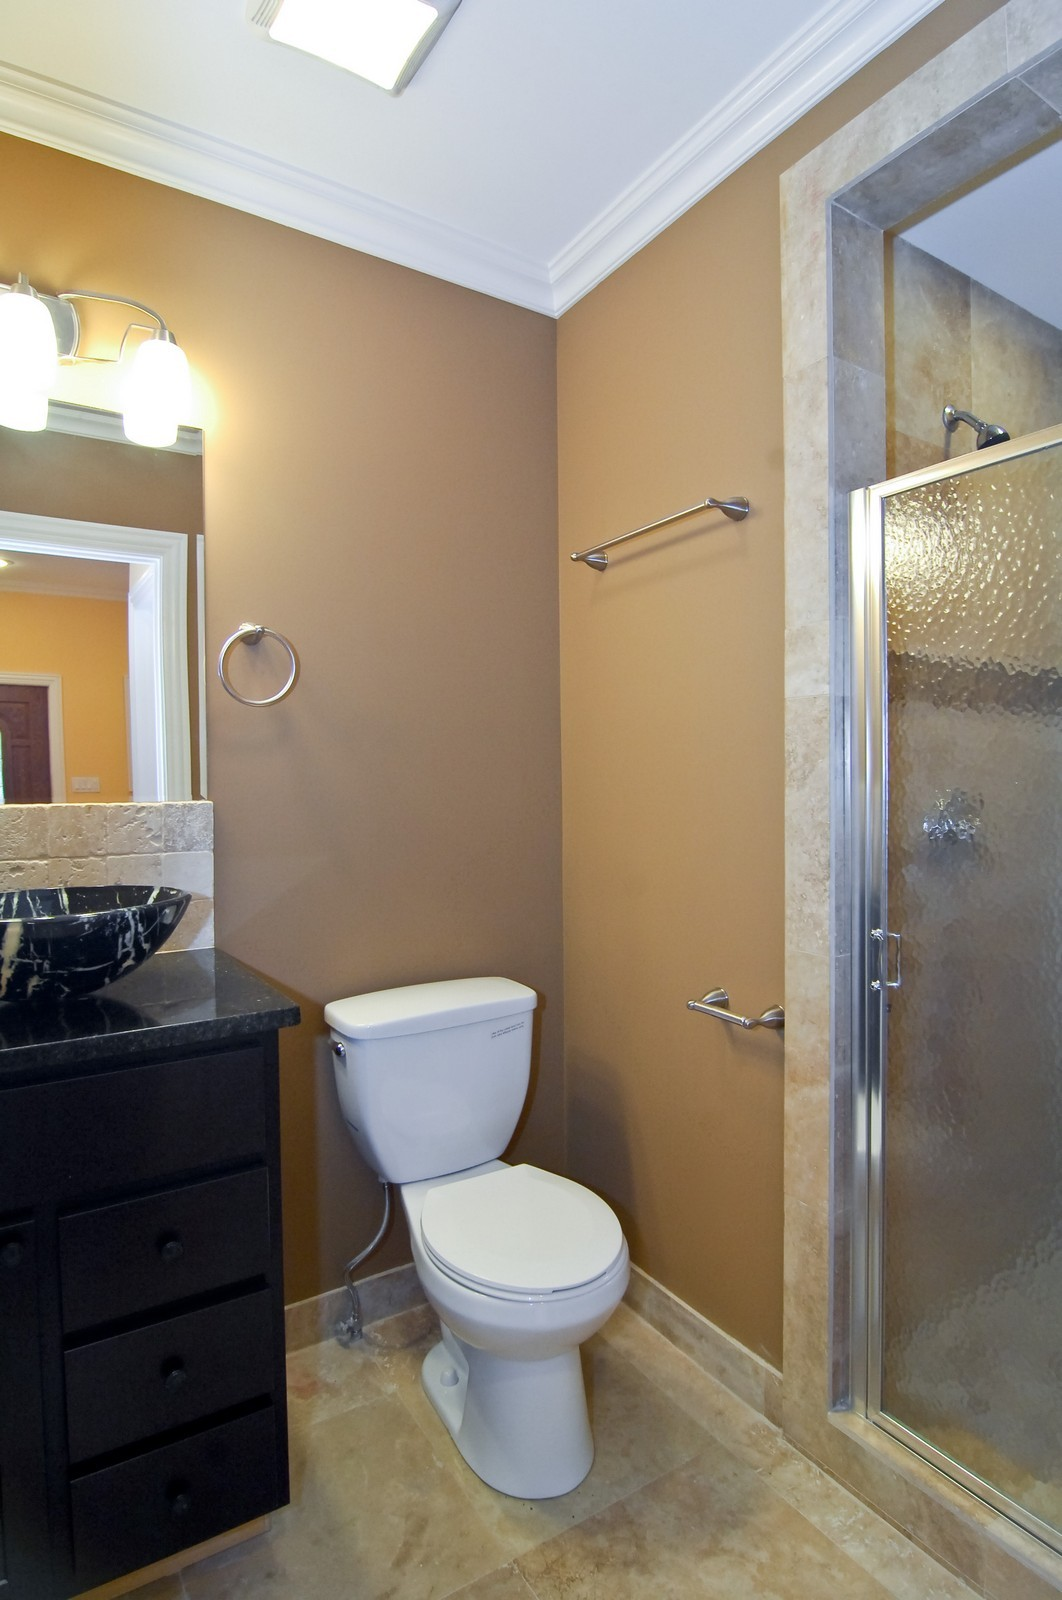 Real Estate Photography - 3743 W Wrightwood, Chicago, IL, 60647 - Bathroom